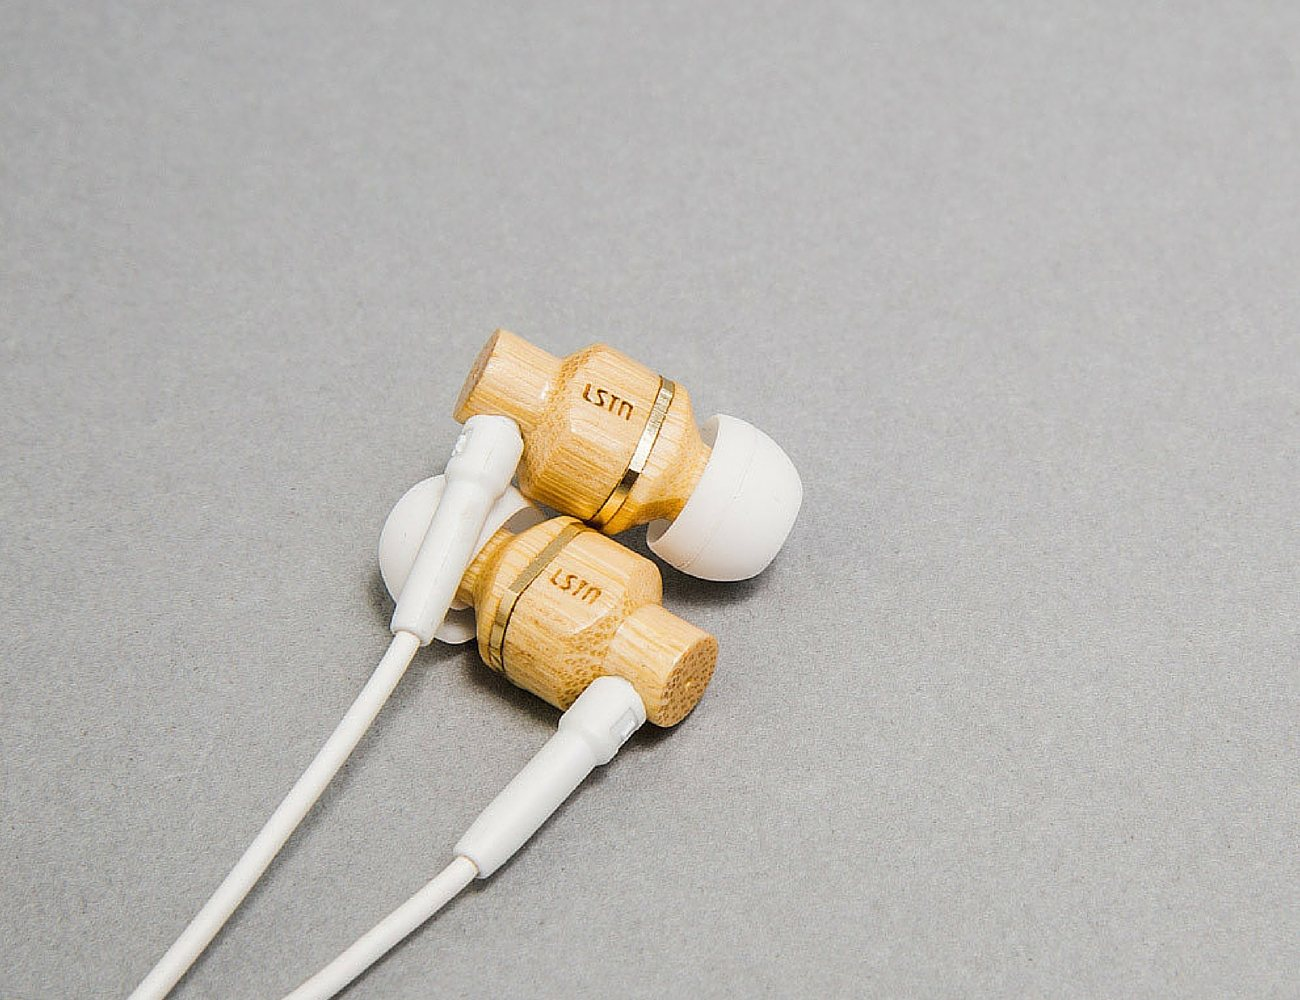 avalon-real-wood-earbuds-by-lstn-04